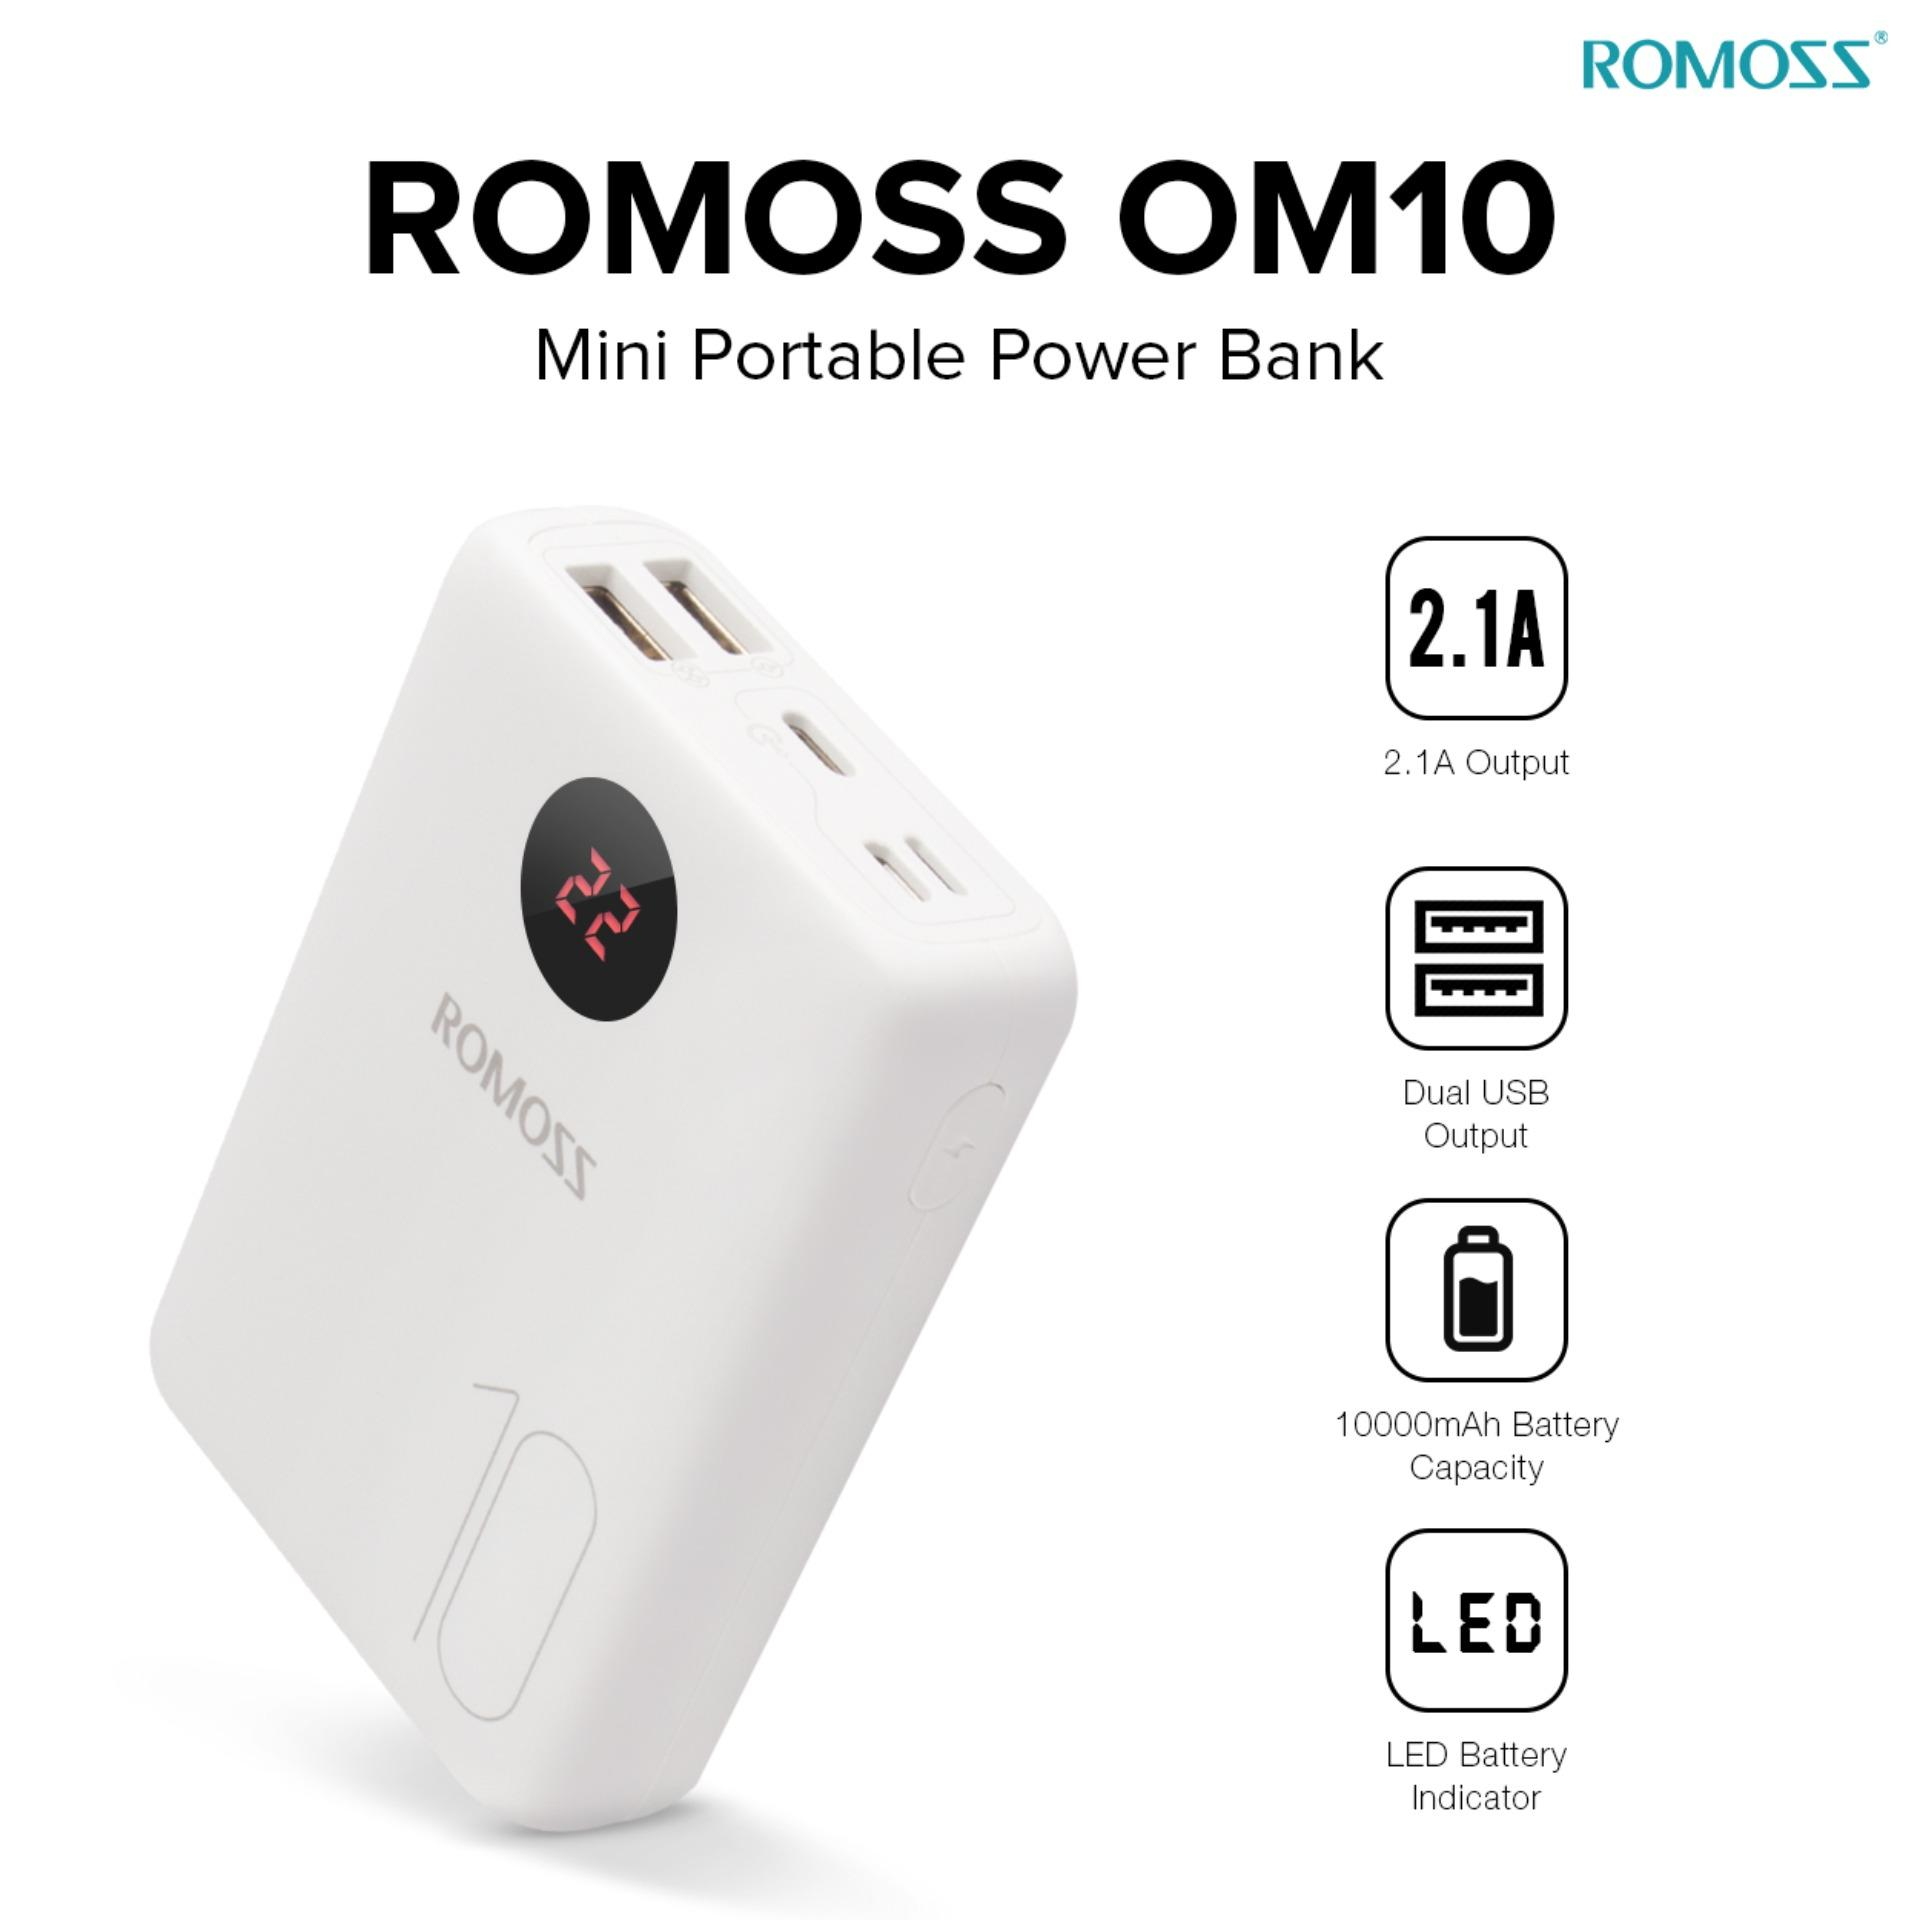 Power Bank For Sale Charger Prices Brands Specs In Mobile 18650 Polymer Pcba Circuit Board Diy Dual Usb 5v 1a Romoss Om10 10000 Mah Ultra Thin Powerbank White